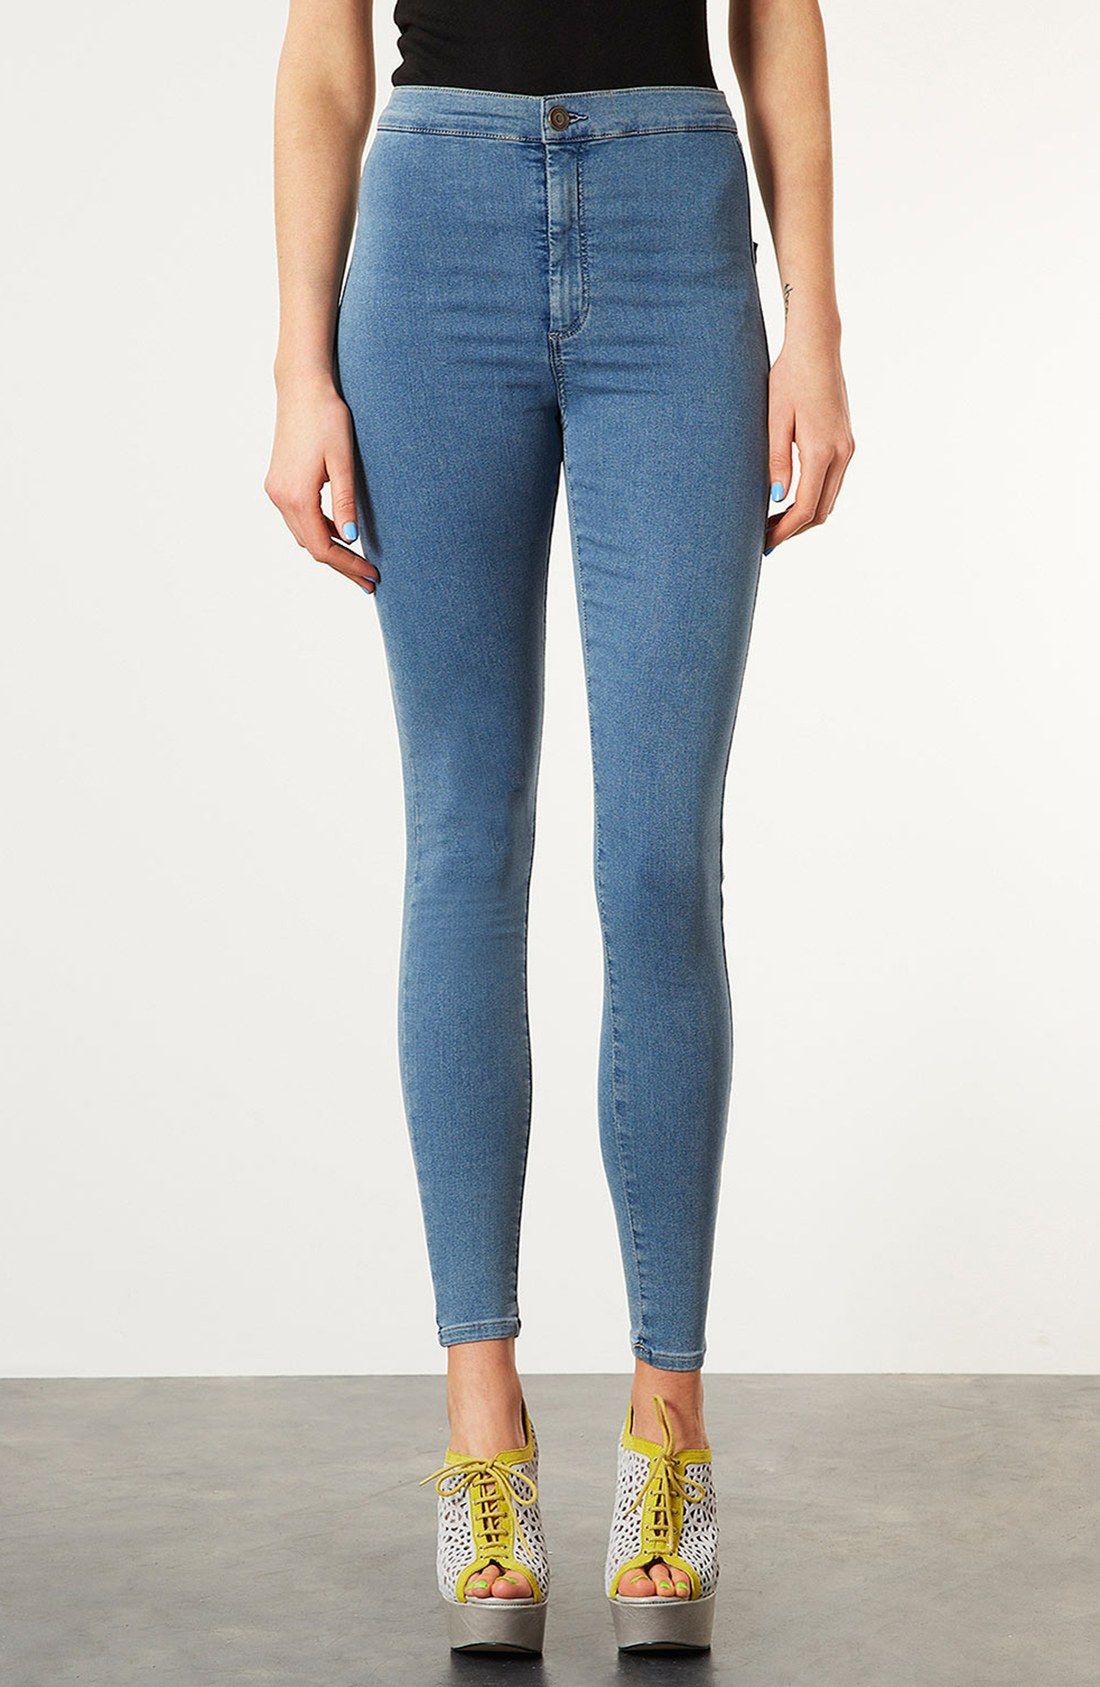 ripped or cropped high waisted jeans for women. high waisted super skinny jeans with side beaded stripes. new / colors